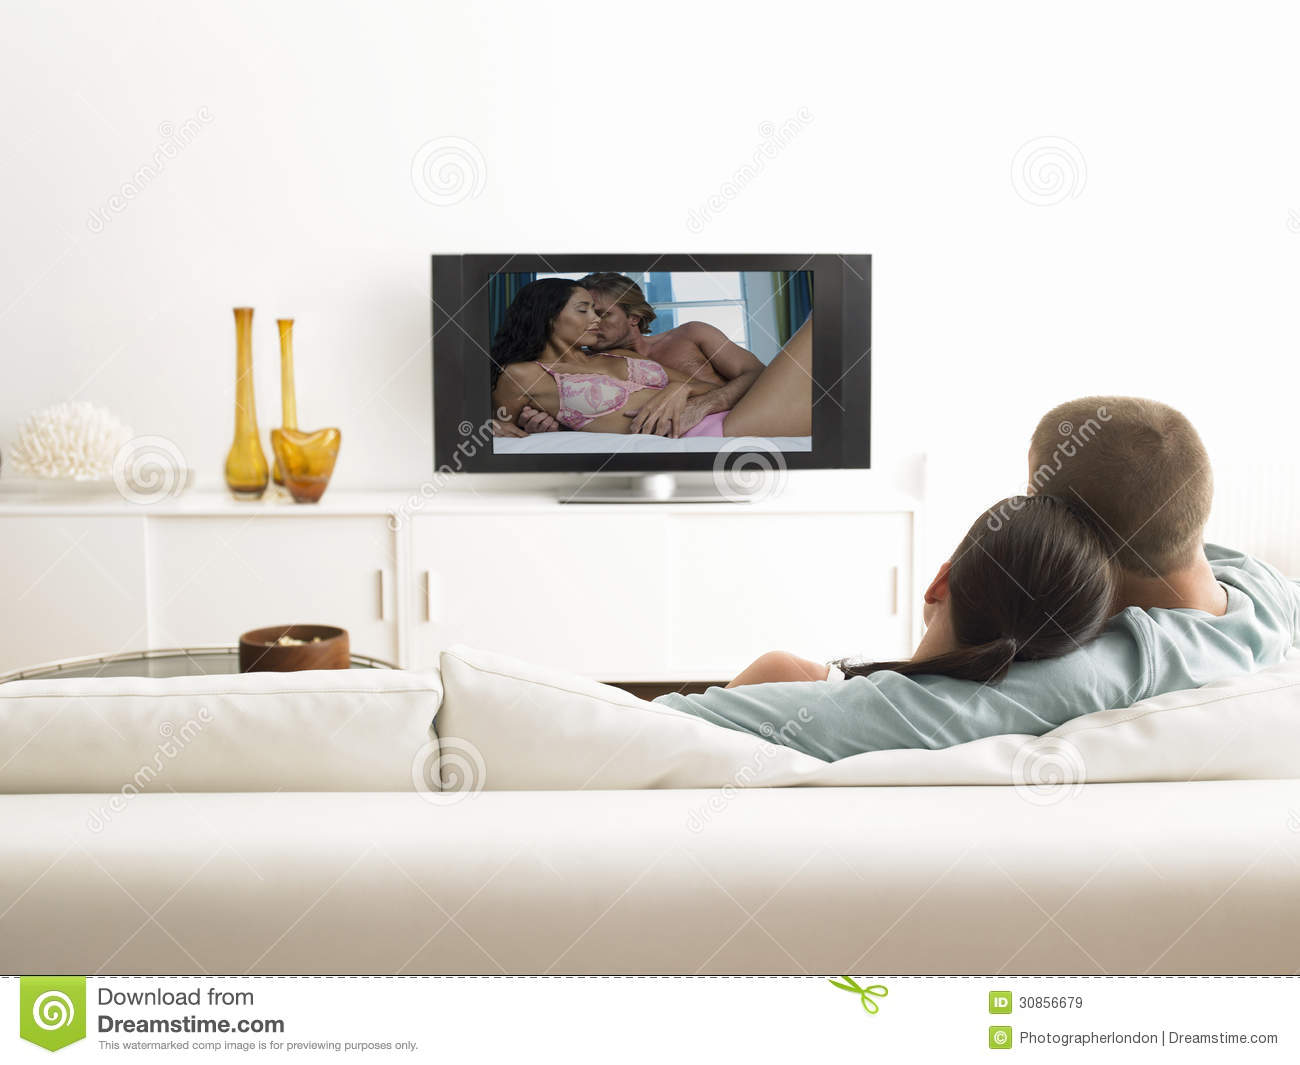 the outlet for children violence is in your living room the television Child tv violence linked to adult violence: the report concludes that parents should restrict the amount of television violence that children are allowed to watch.